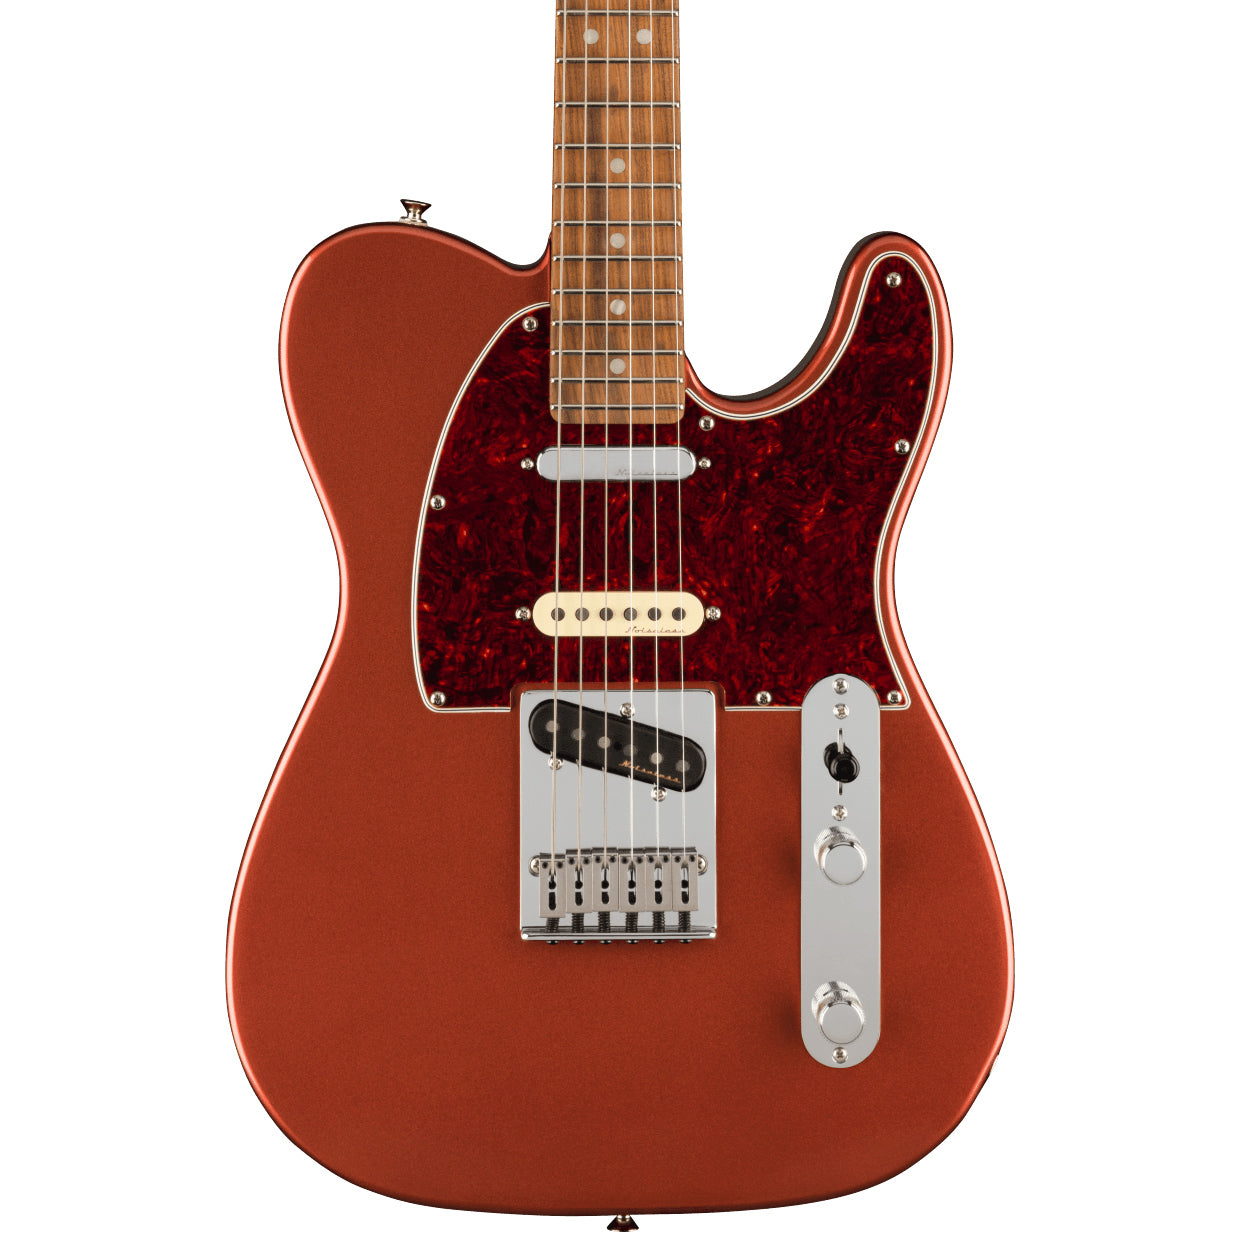 Fender Electric Guitars - Player Plus Nashville Telecaster - Pao Ferro - Aged Candy Apple Red